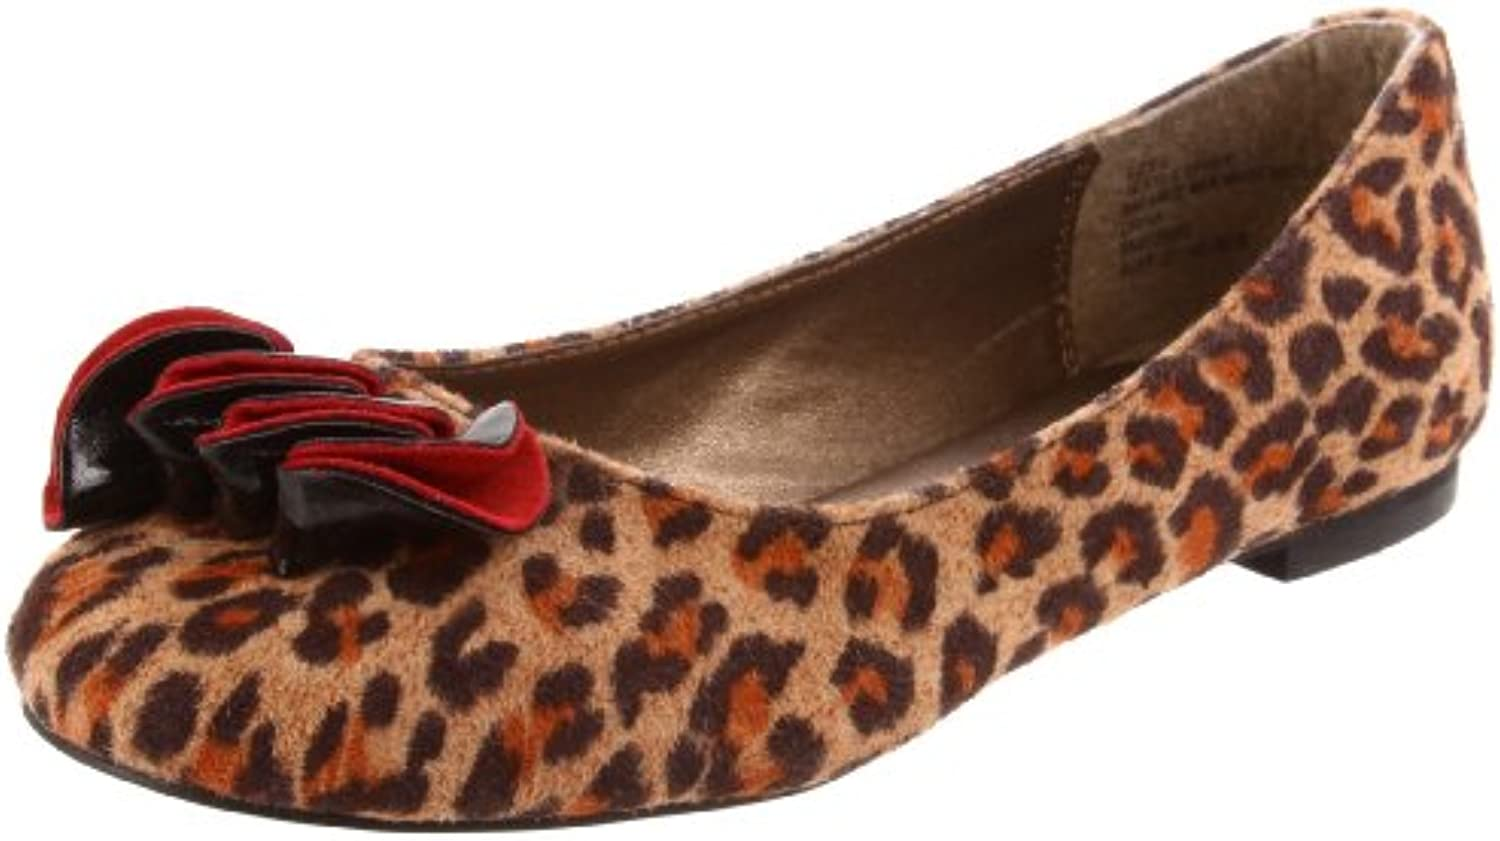 Steve Madden Kids' Rufflle Ornamented Flat Leopard 1 M US Little Kid